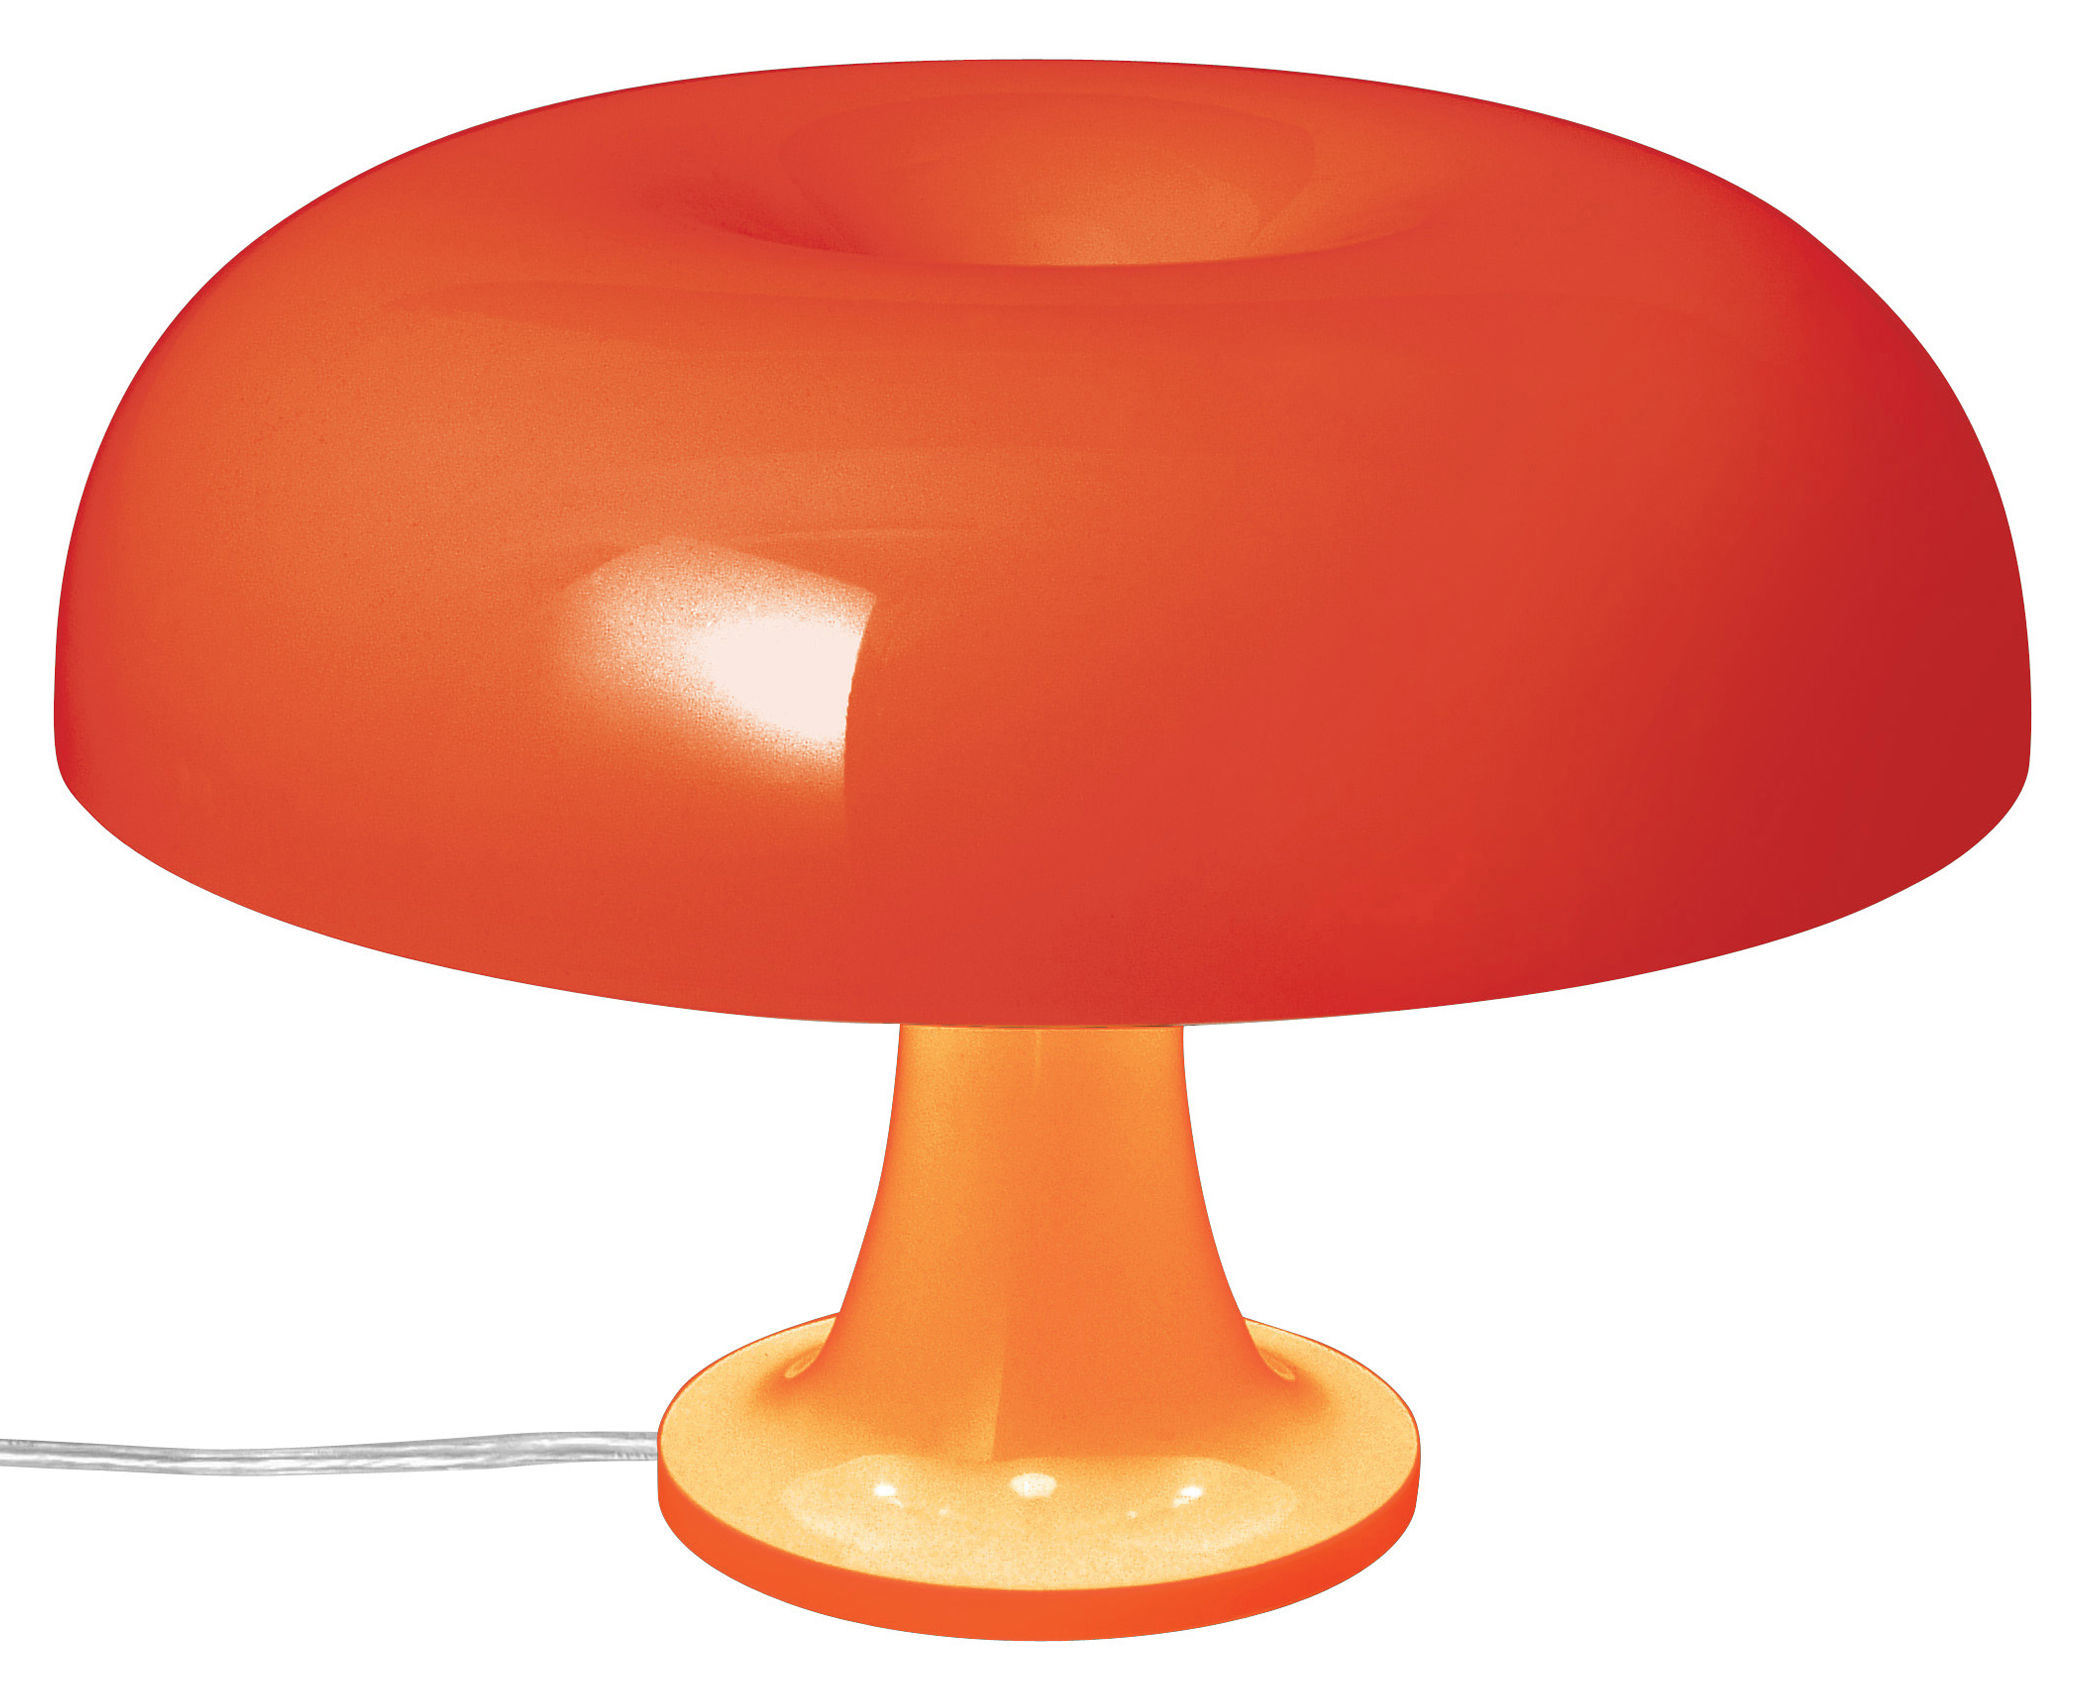 Luminaire - Lampes de table - Lampe de table Nessino / Ø 32 cm - Artemide - Orange opaque - Polycarbonate